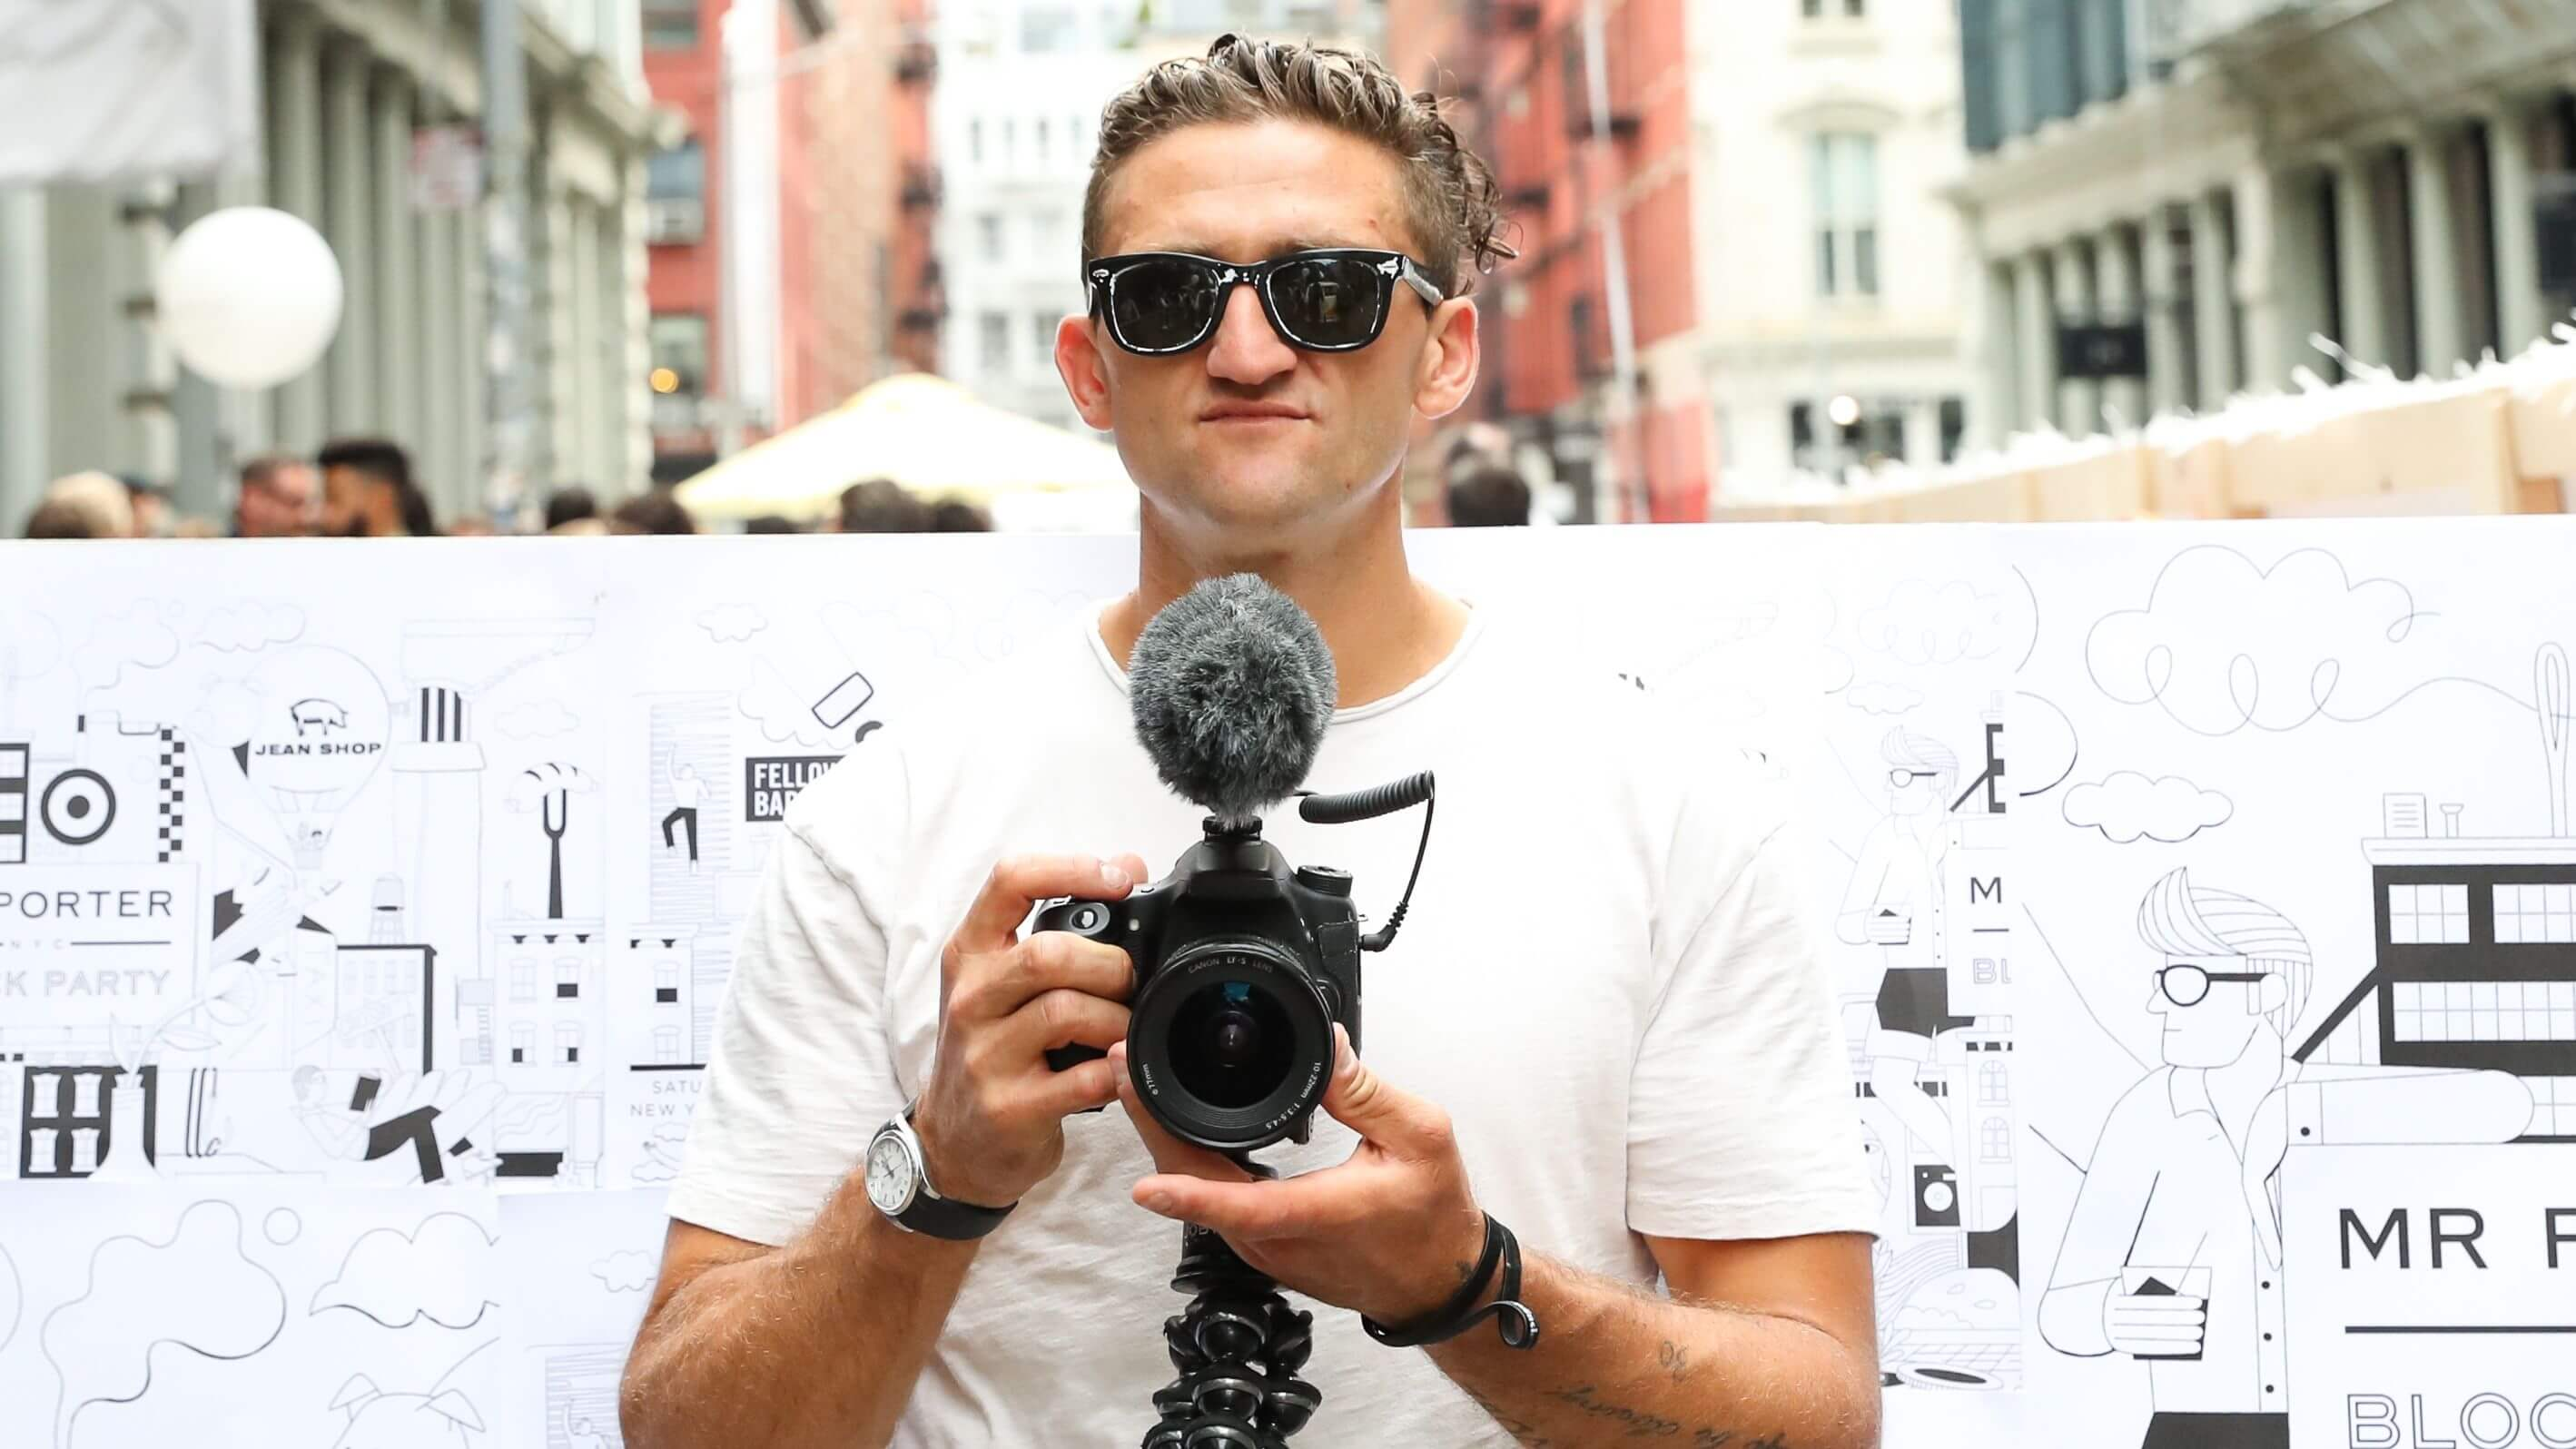 How to Make a YouTube Channel - Casey Neistat YouTuber